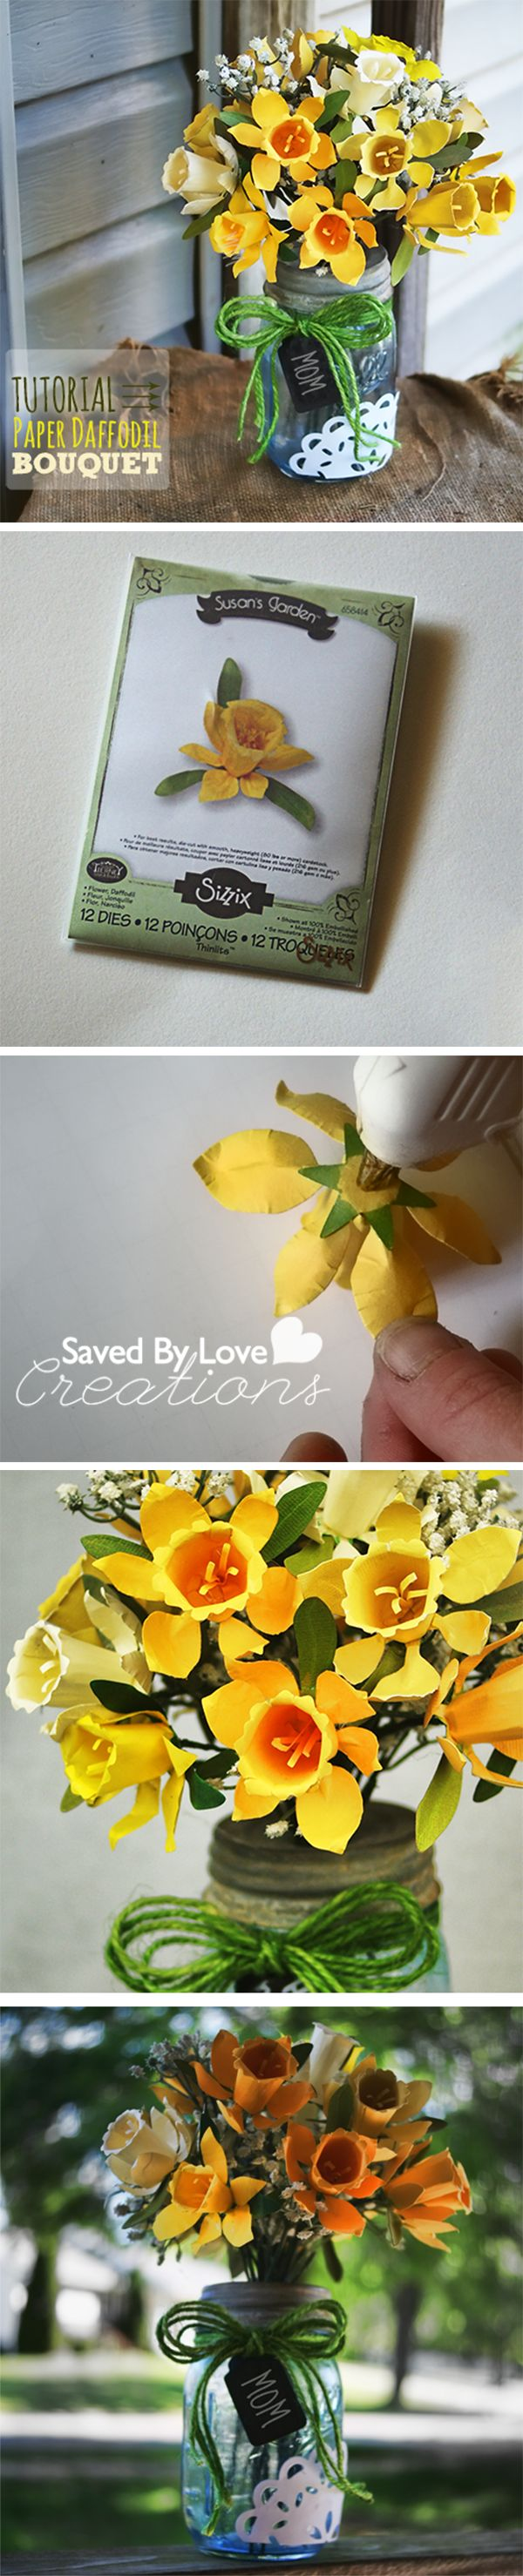 The pin junkie how to make paper bluebonnets - Learn To Make A Gorgeous Paper Daffodil Bouquet Sizzix And Painted Masonjar Vase